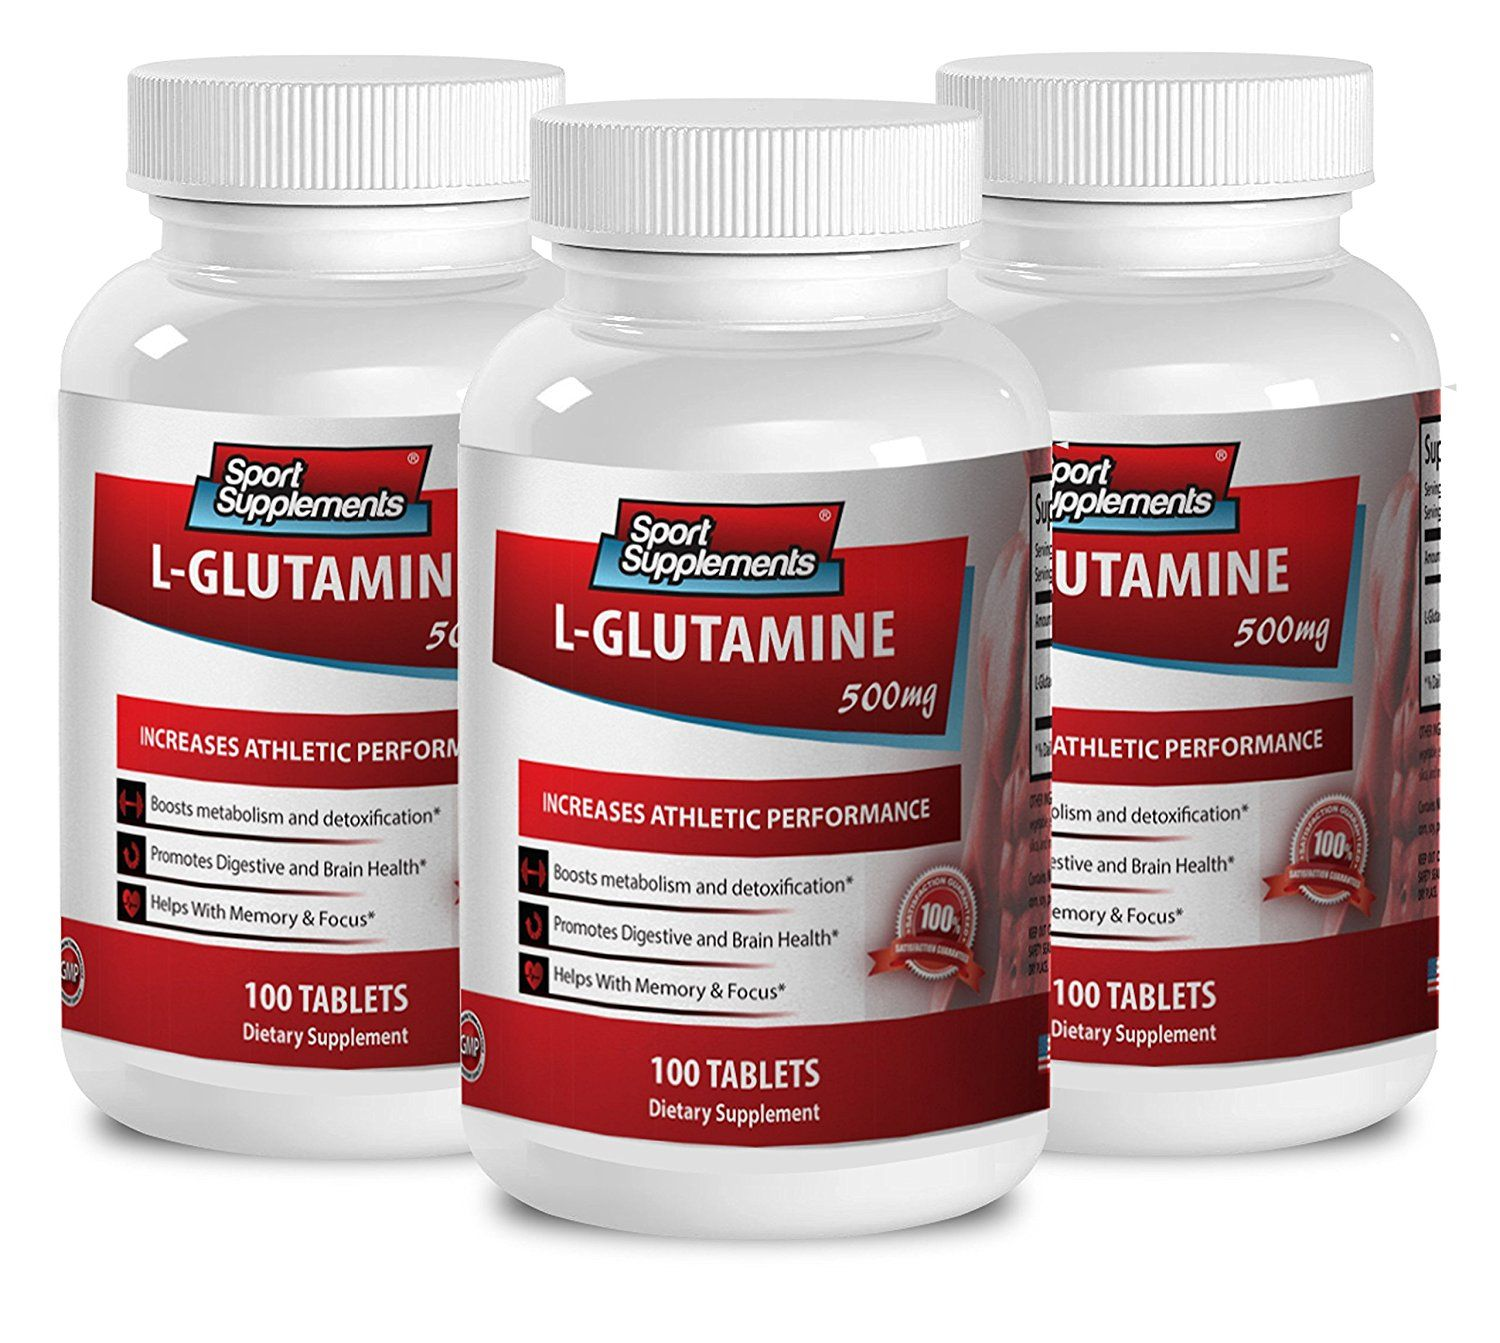 Best supplement stack to loss weight and gain muscle image 2